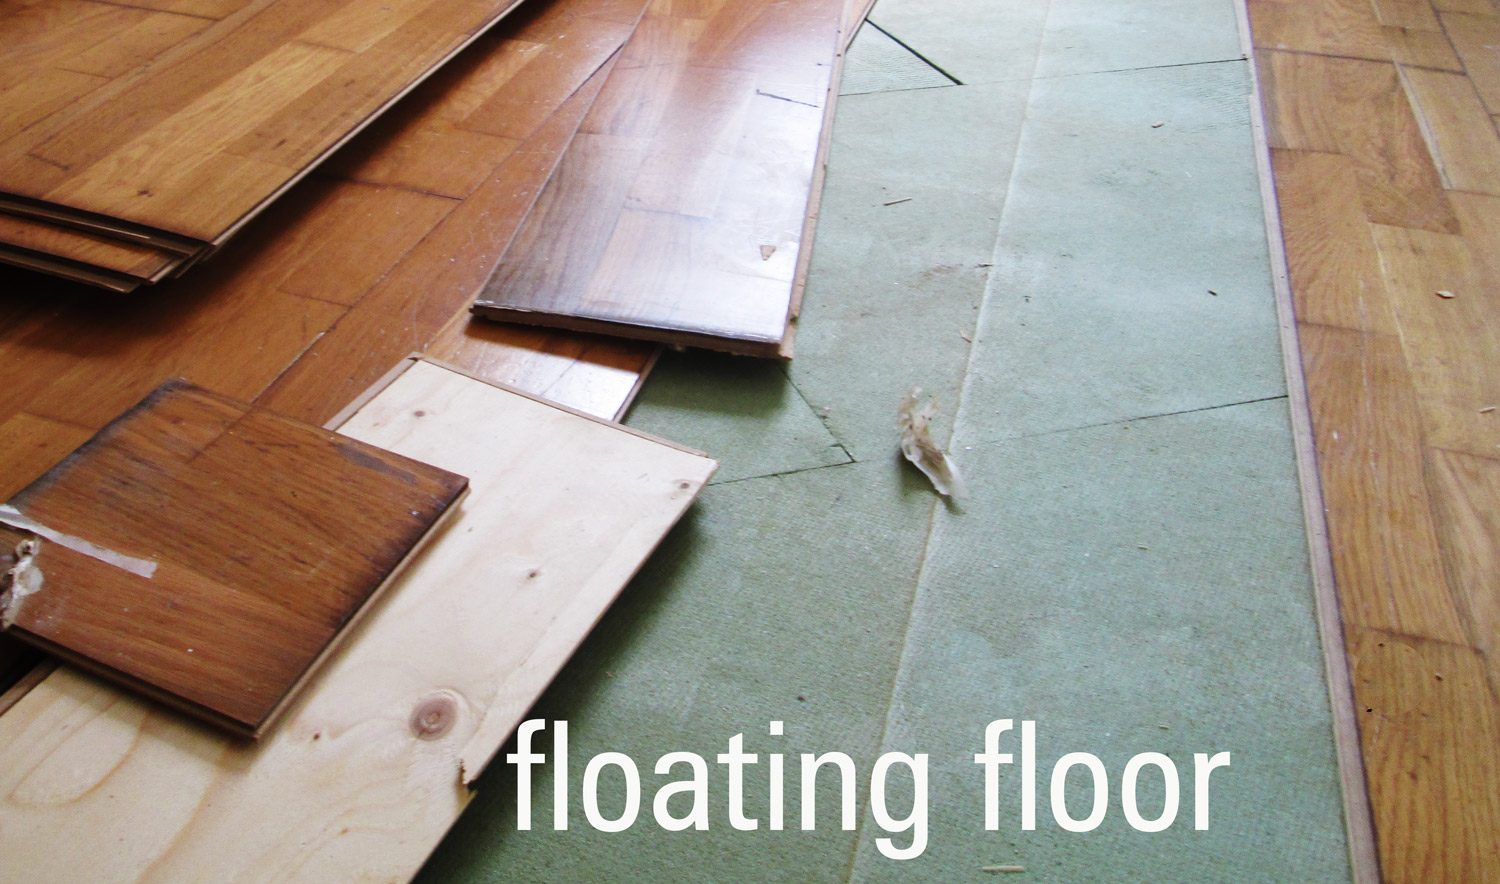 Advantages and disadvantages of floating floors